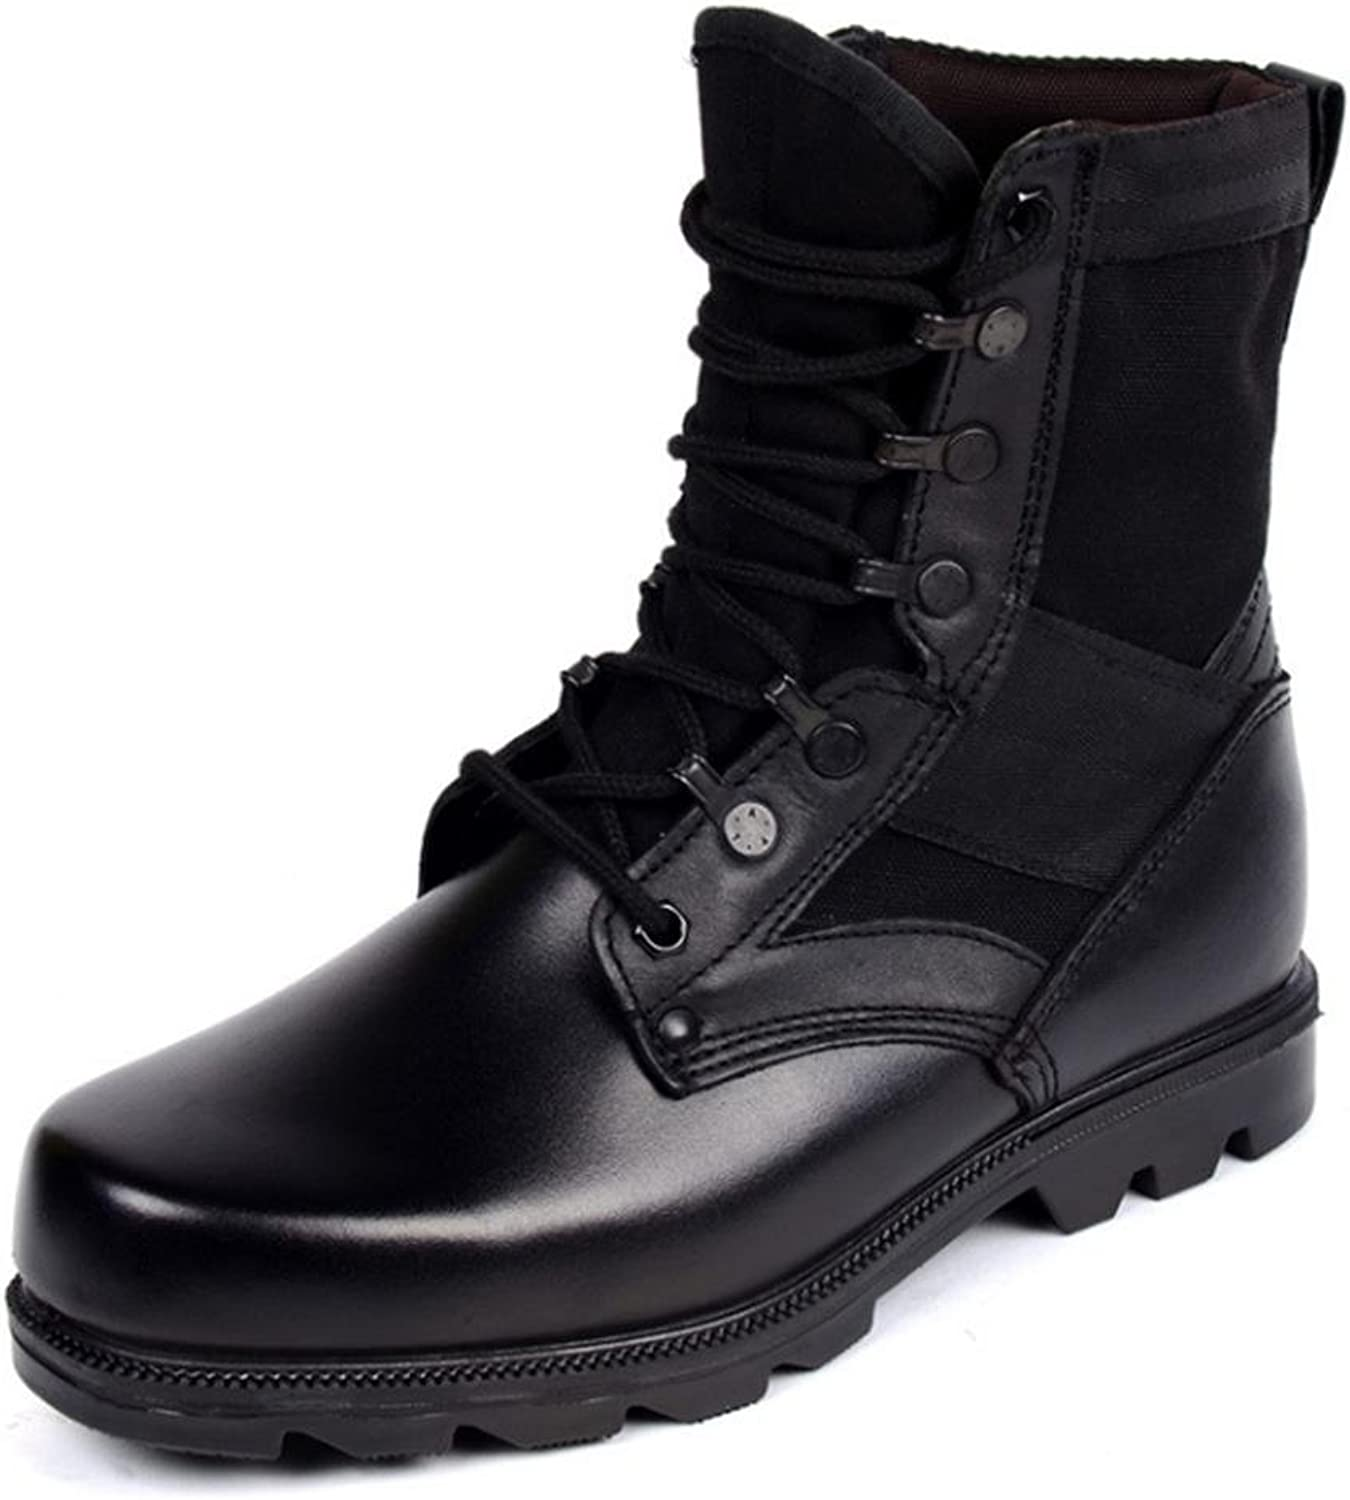 Men'S shoes Winter Genuine Leather Casual Martin Boots Work Military Combat Classic Lace-Up Size 39 To 43